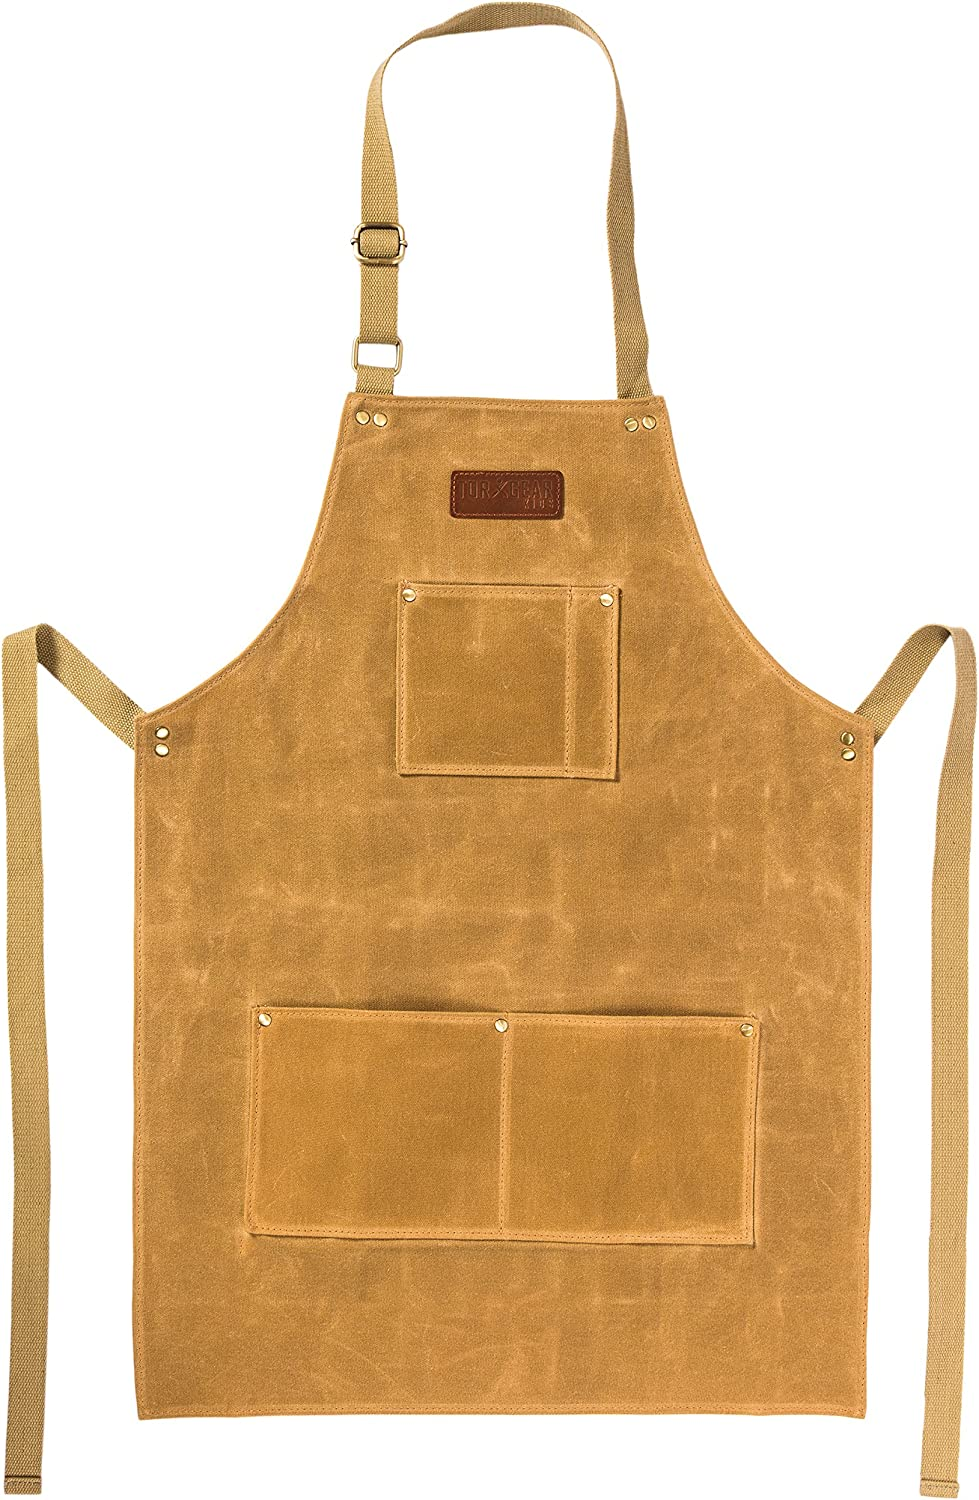 Details about  /Children Tool Aprons for Heavy Duty Thick Water Resistant Washed Canvas